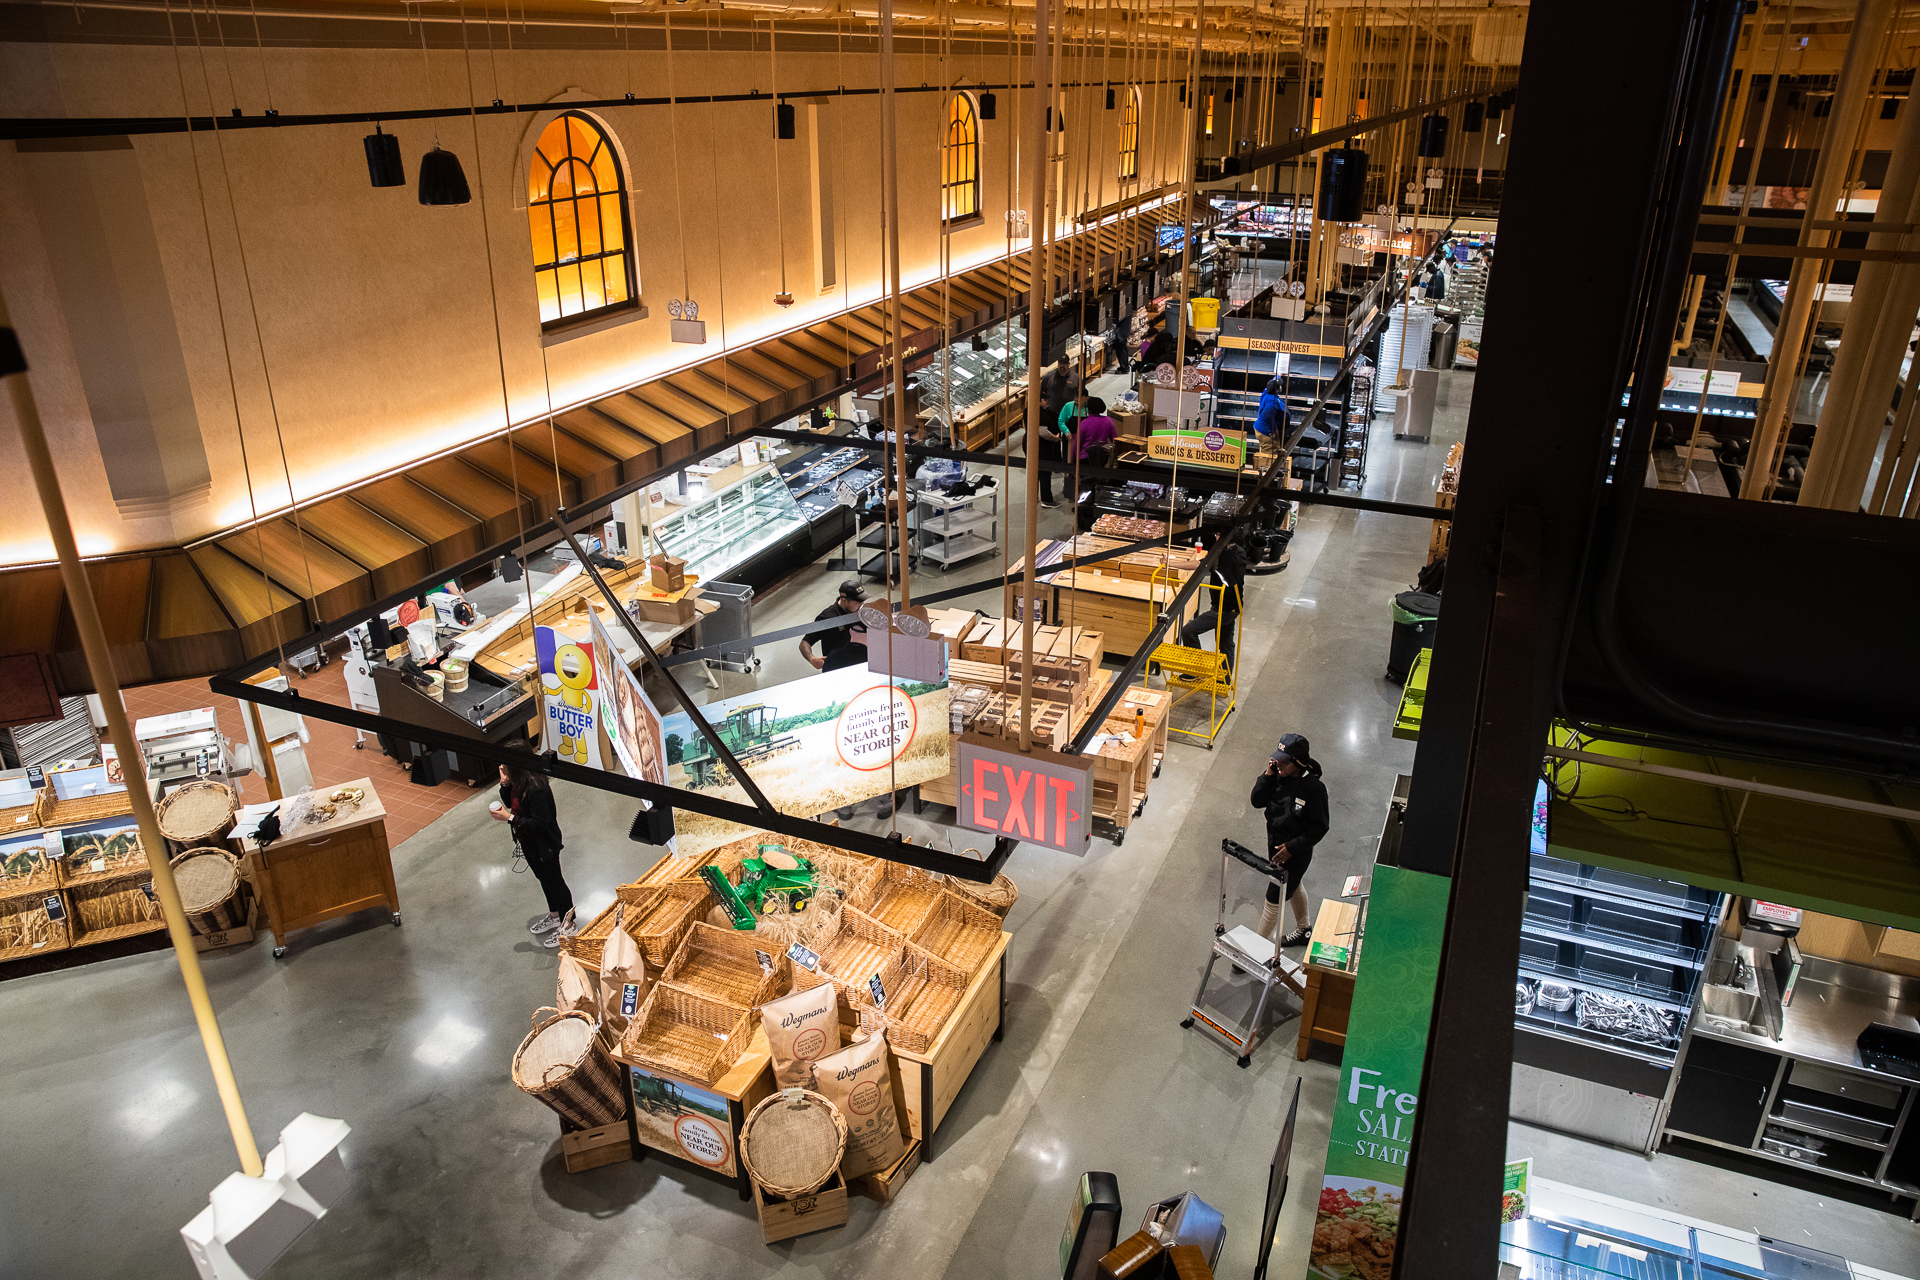 Up on the mezzanine, you get a bird's-eye view of Wegmans' layout. Eagle photo by Paul Frangipane